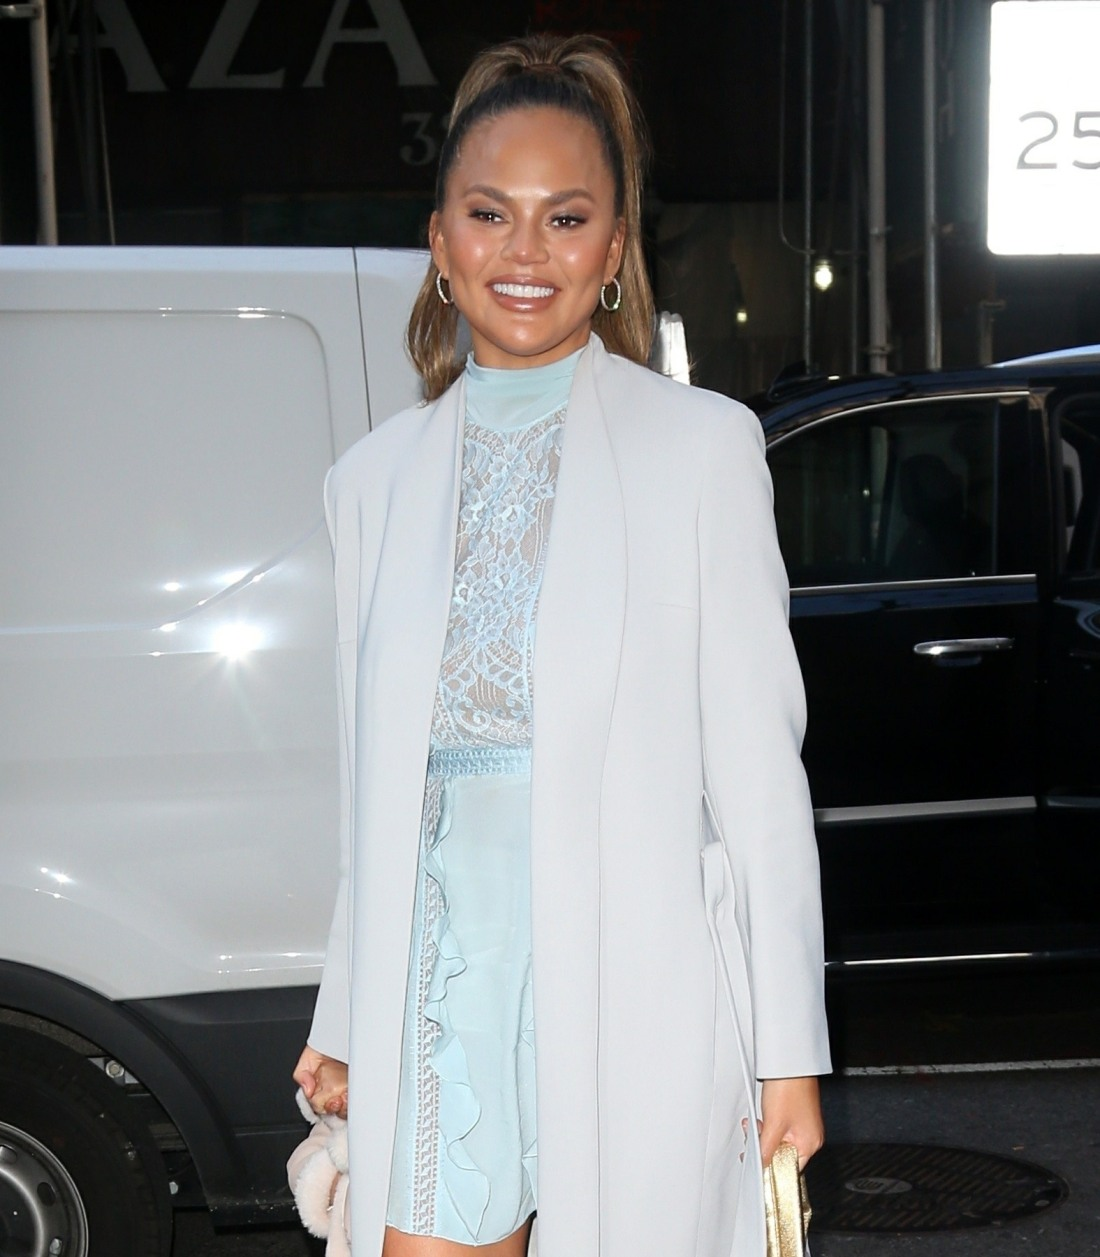 Chrissy Teigen stops by GMA with cute daughter Luna